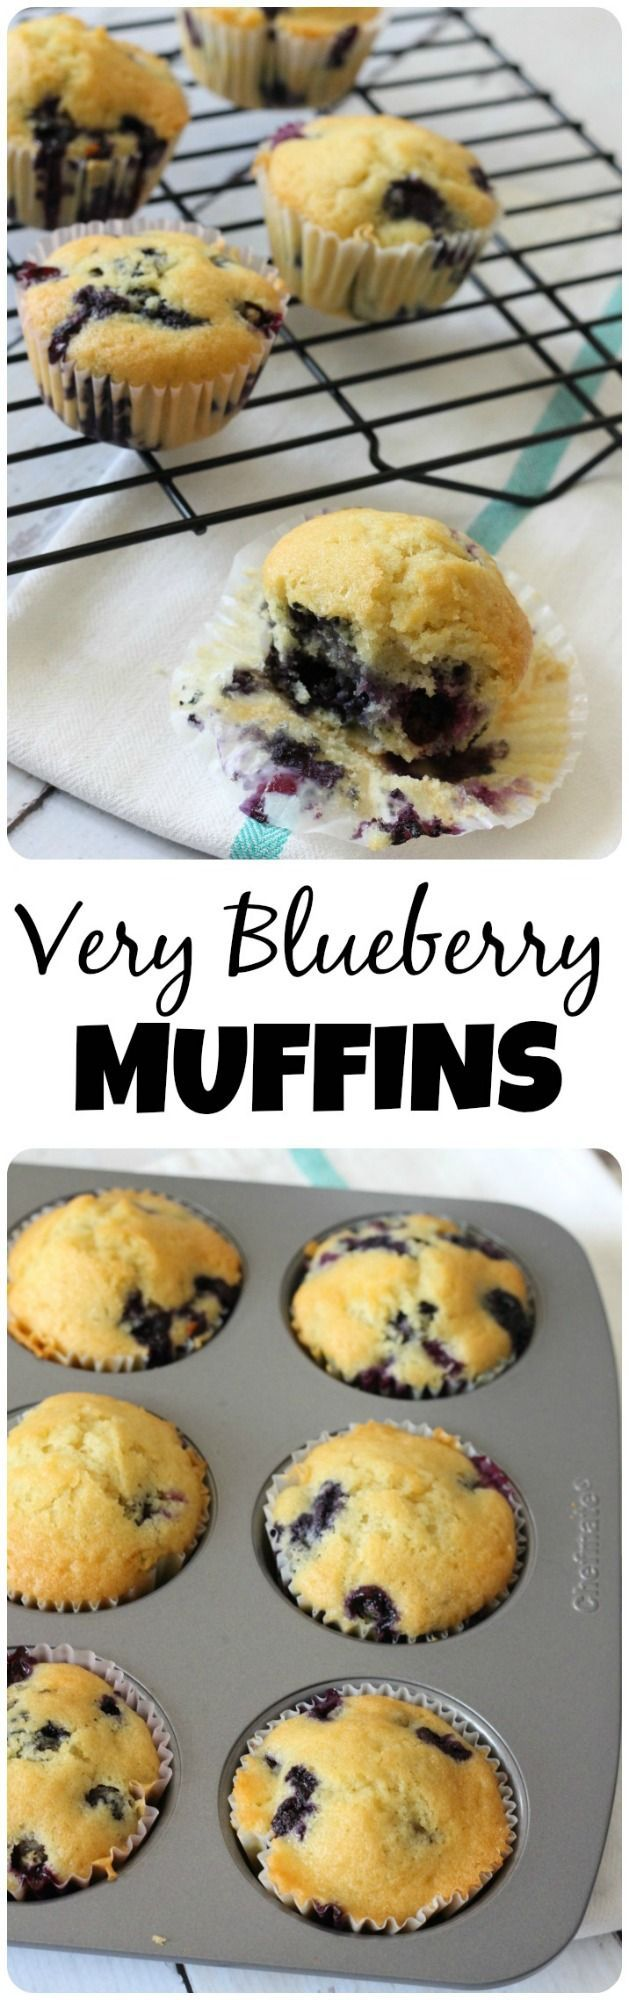 This blueberry muffins recipe is very moist with a lot less butter than traditional blueberry muffin recipes.